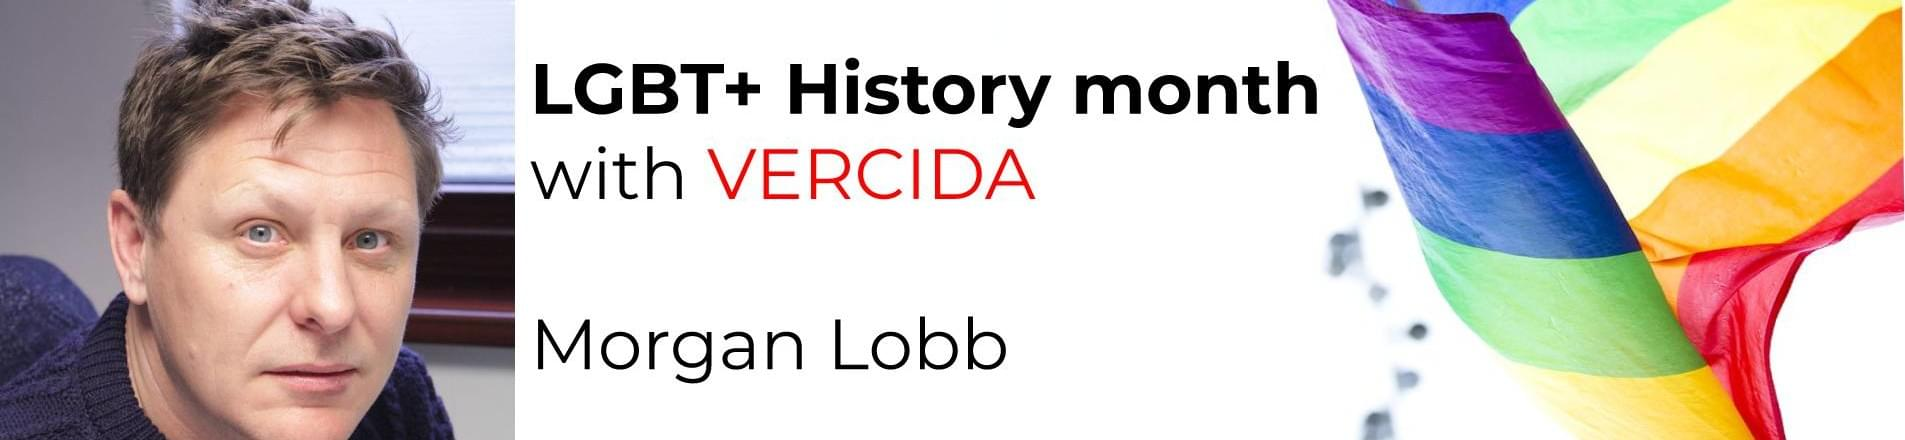 LGBT History Month with VERCIDA